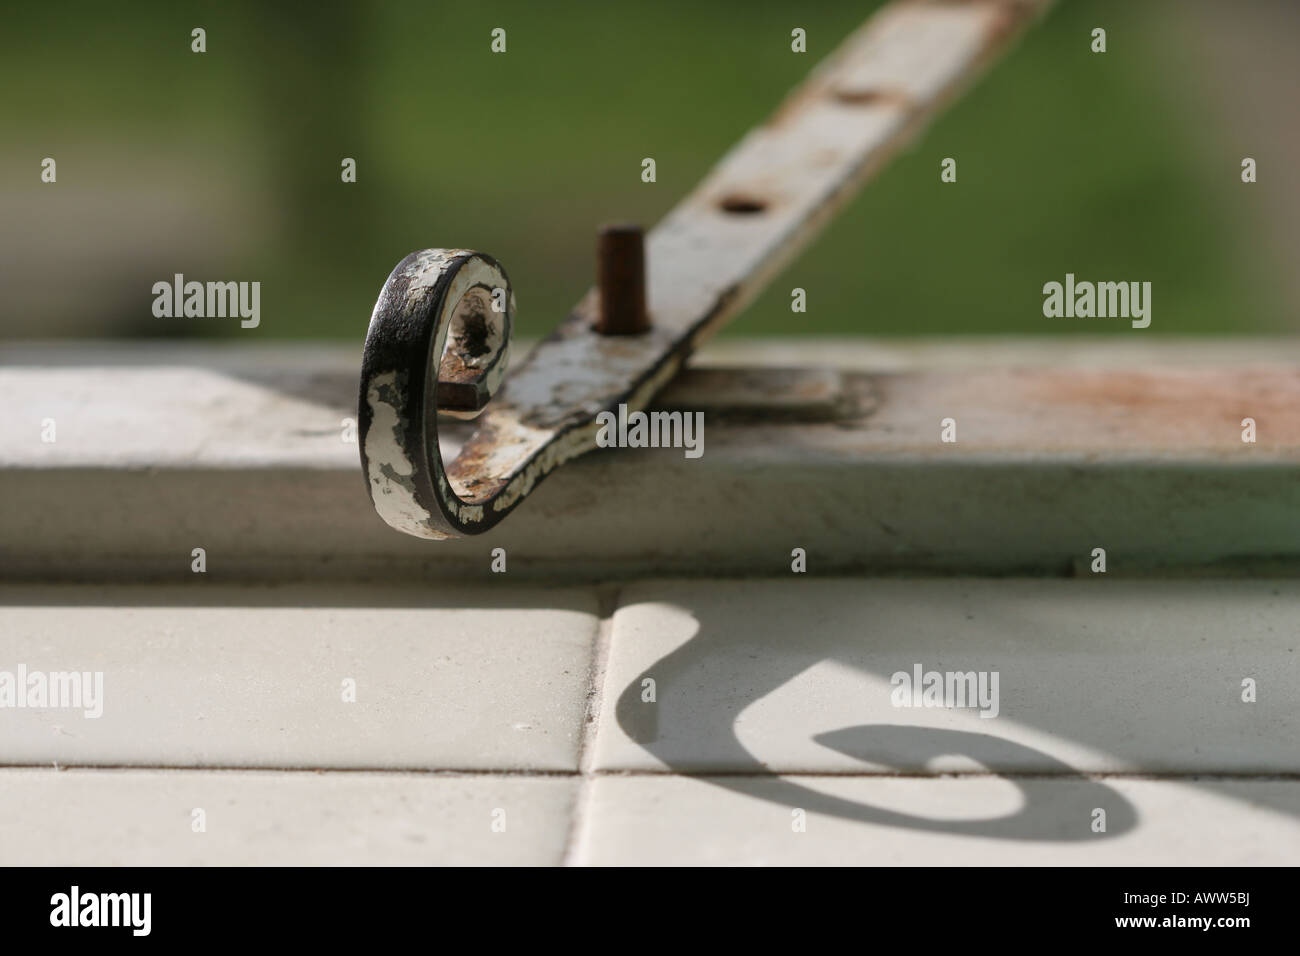 Stock Photo - White spiral window latch holding unseen window open with view to green grass & White spiral window latch holding unseen window open with view to ... Pezcame.Com